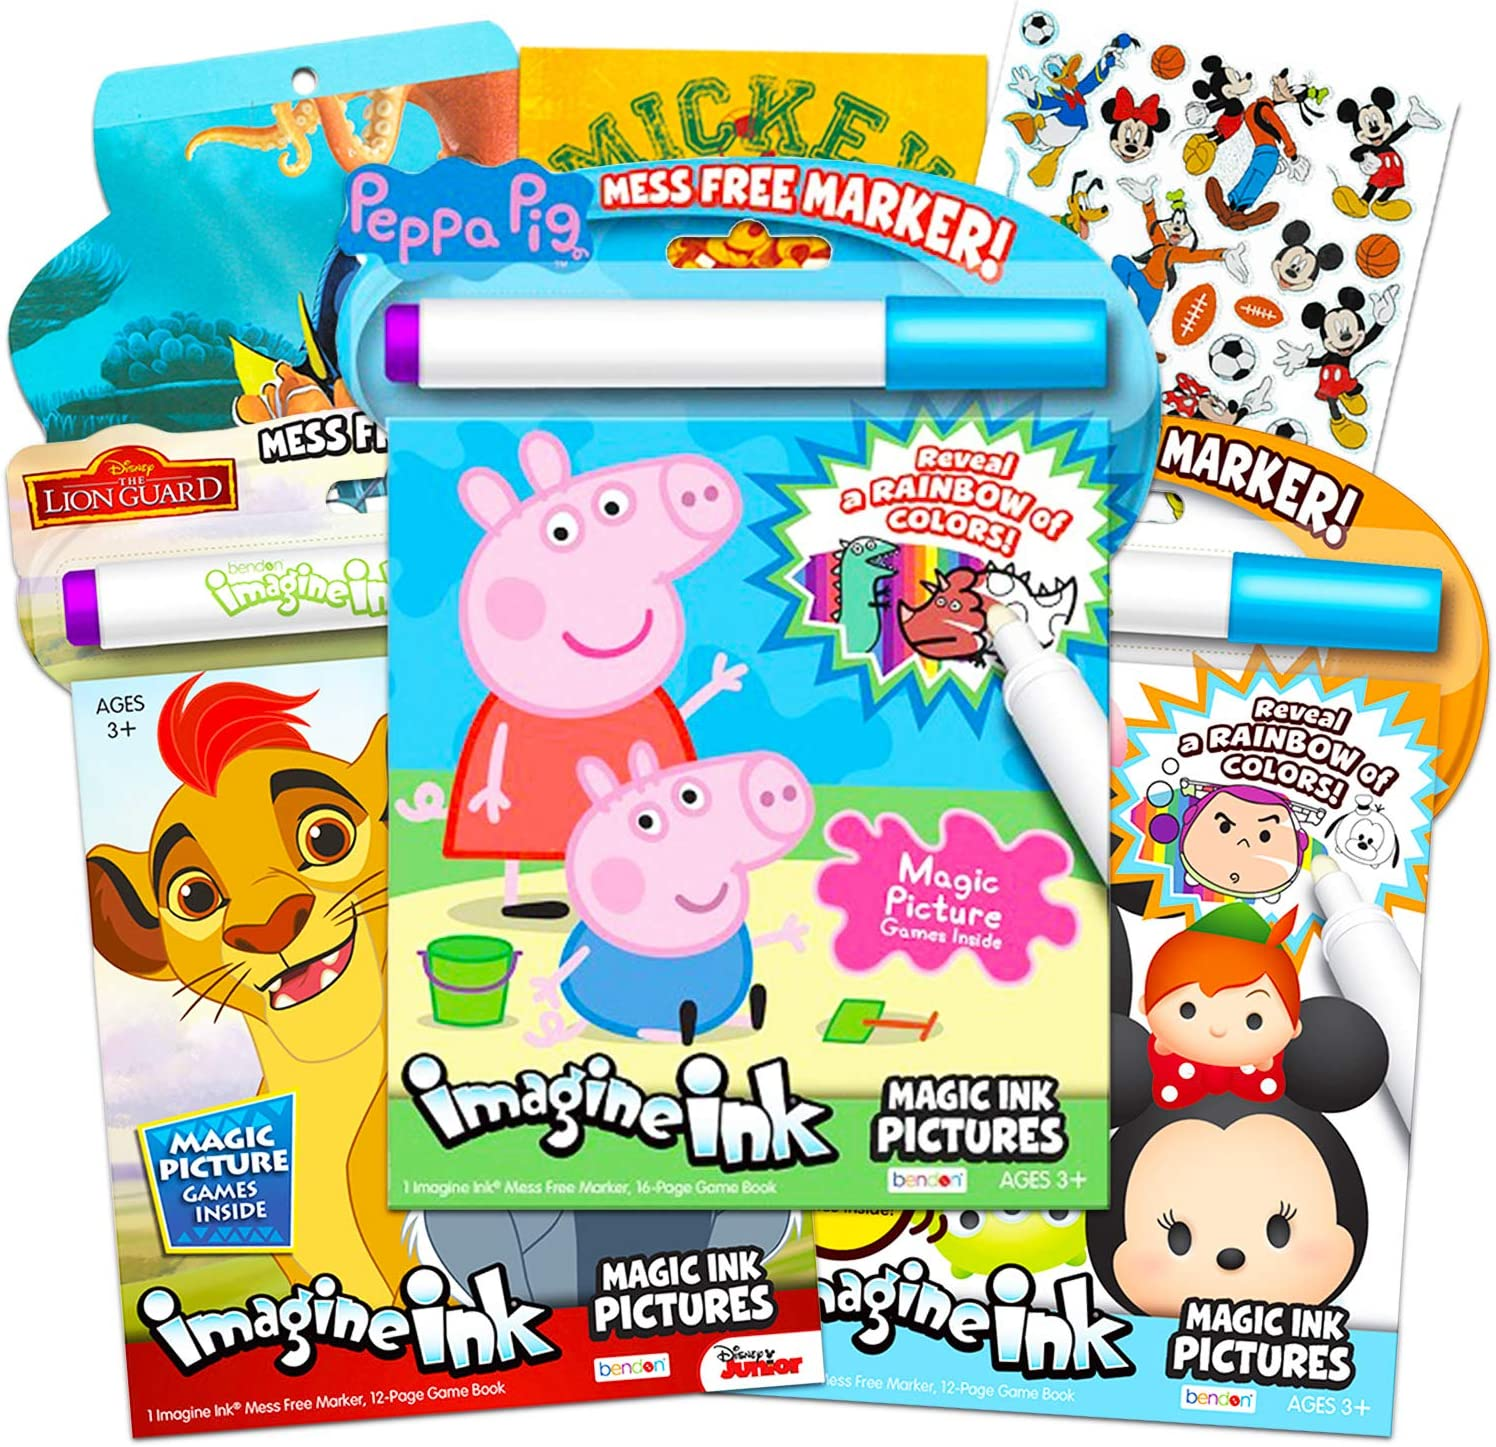 Imagine Ink No Mess Coloring Book Super Set ~ Bundle Includes 3 No Mess  Magic Ink Activity Books Featuring Peppa Pig, Lion Guard, and Tsum Tsum  with ...